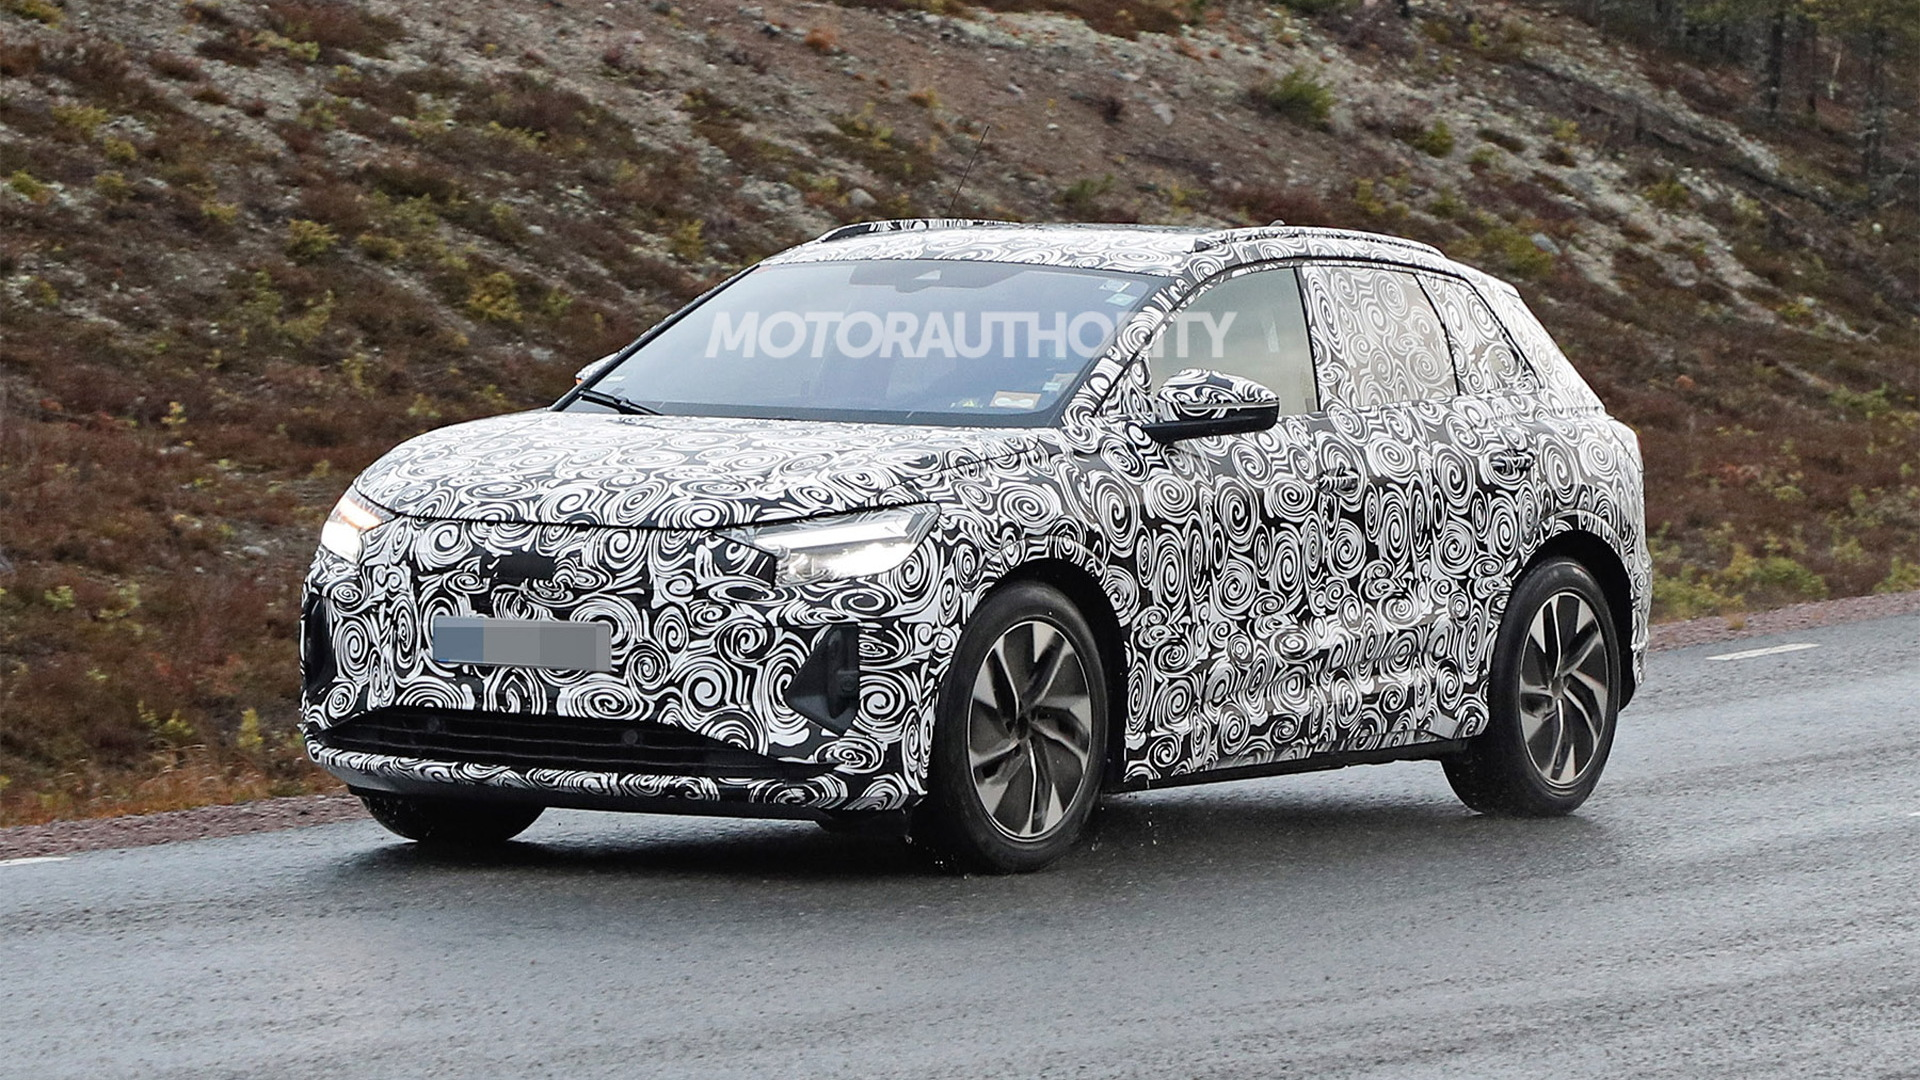 2022 Audi Q4 E-Tron spy shots - Photo credit: S. Baldauf/SB-Medien